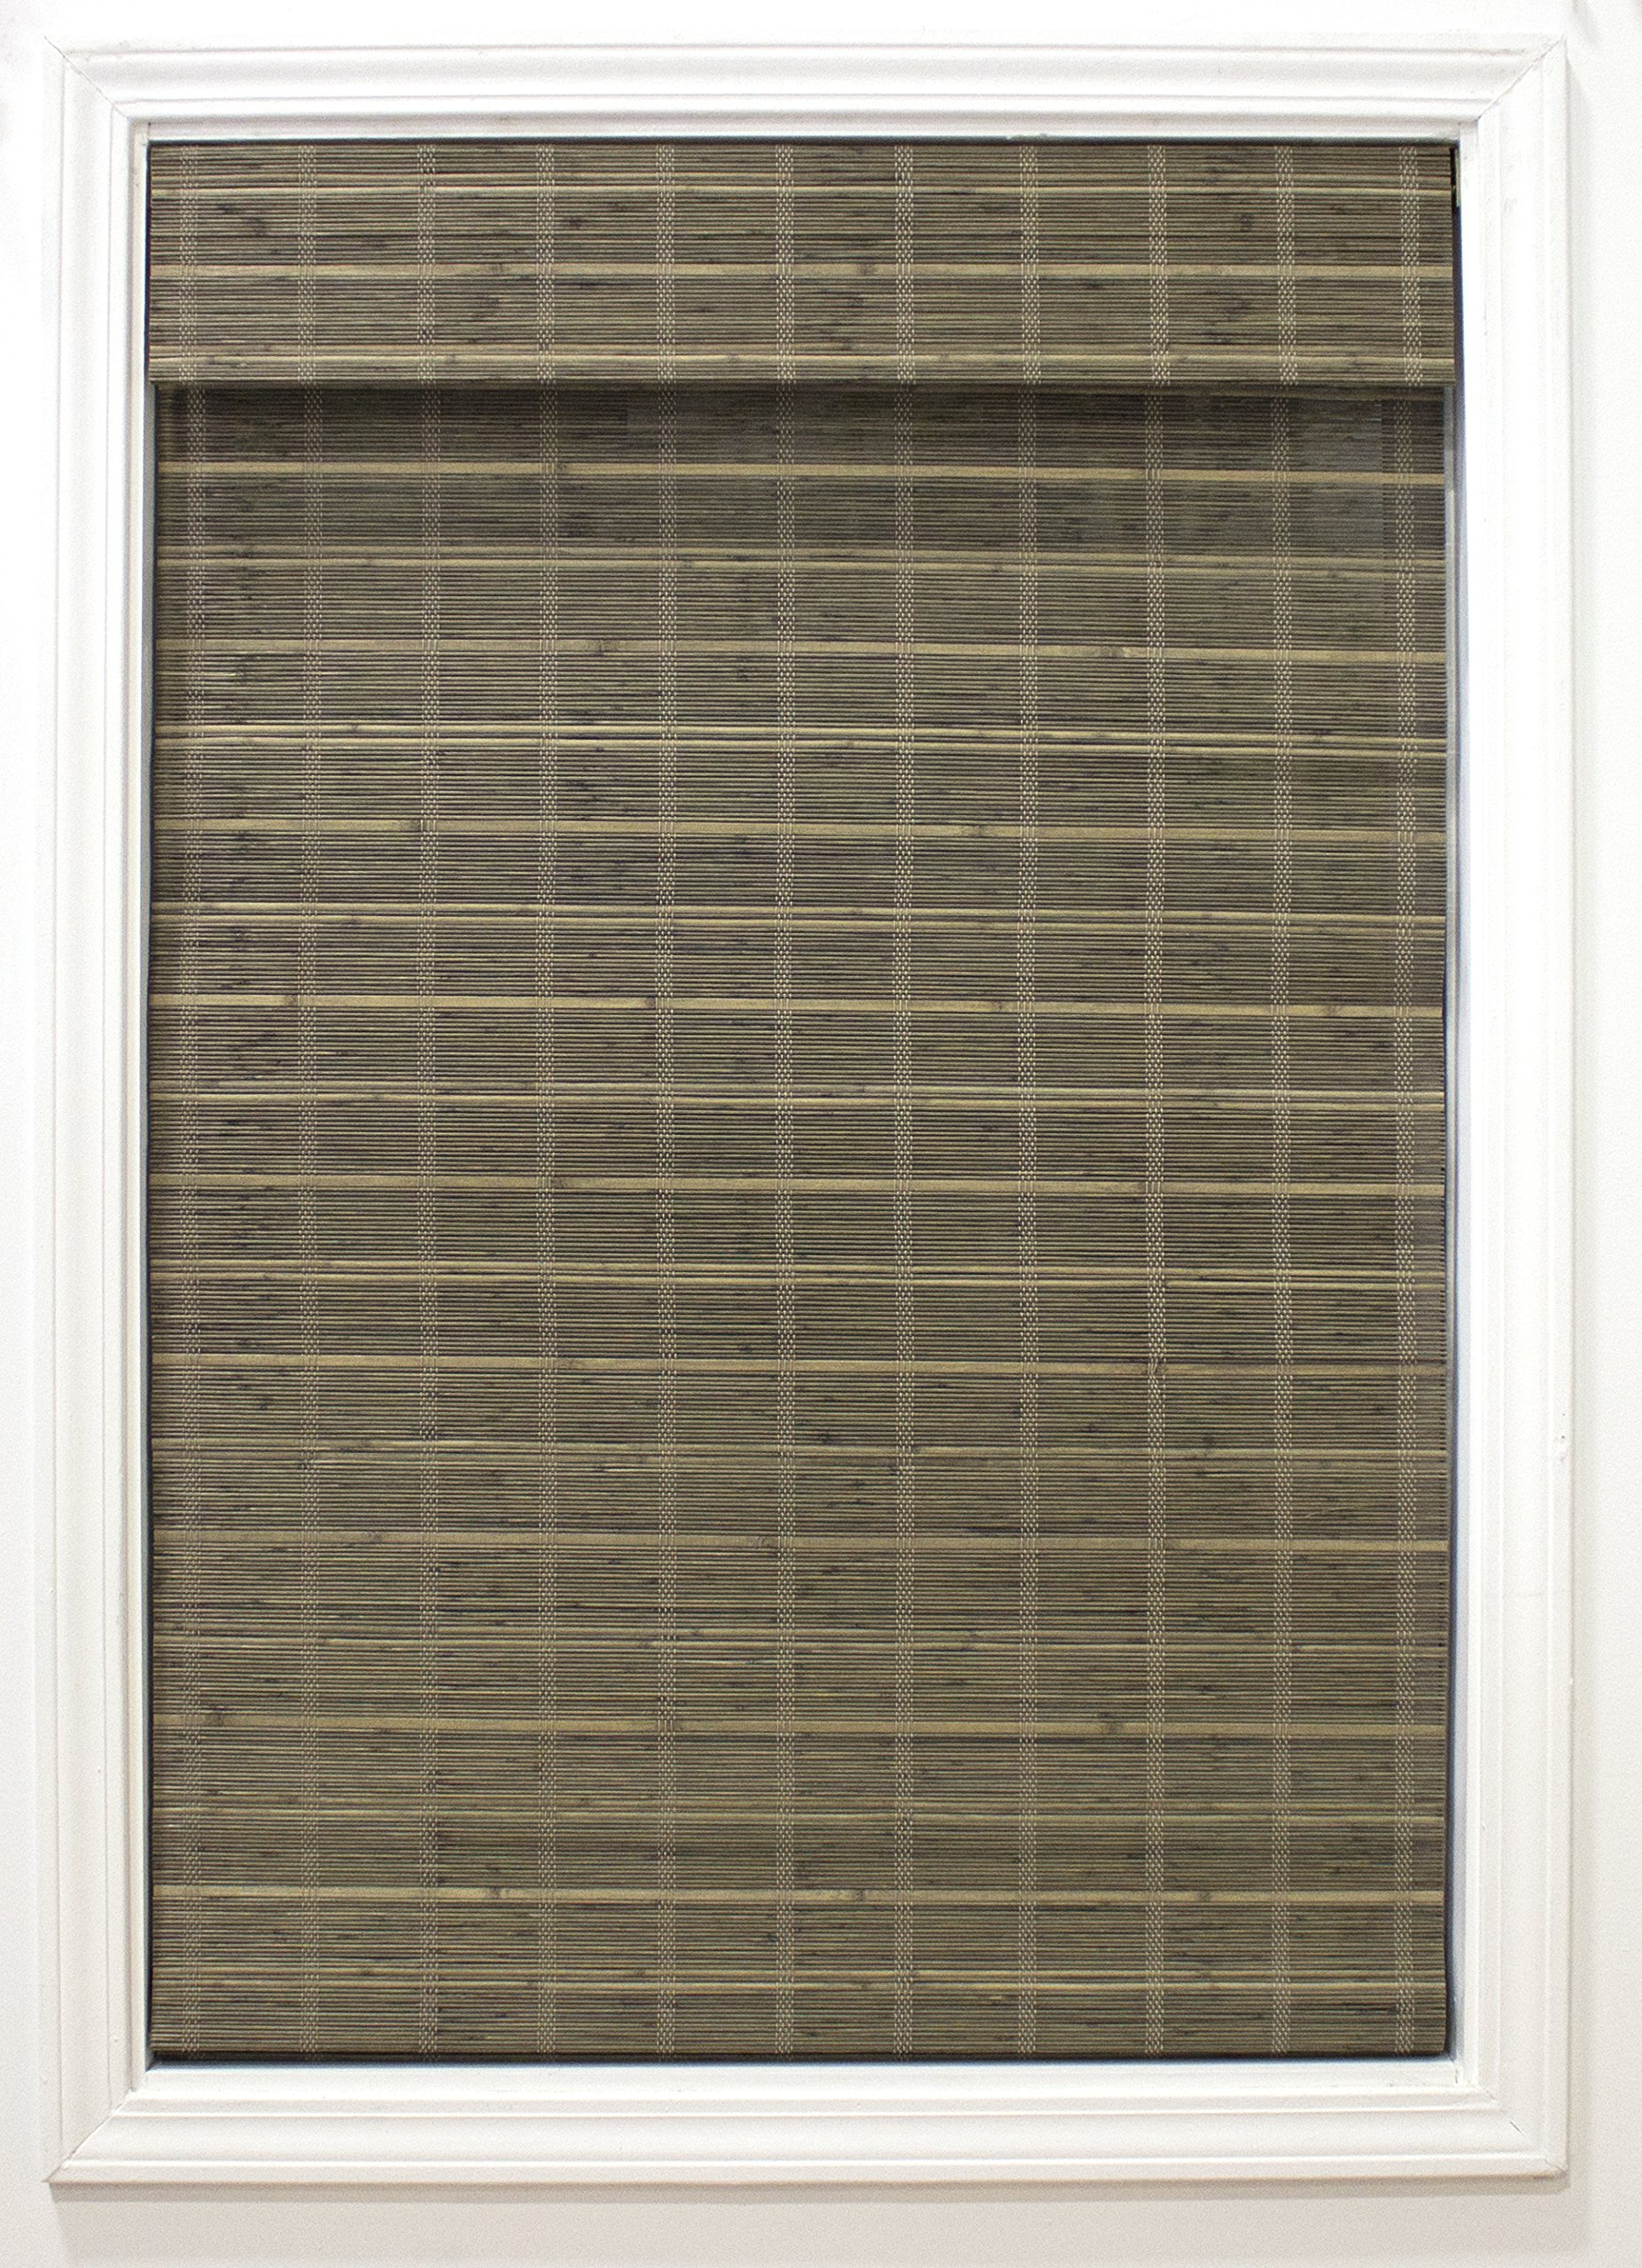 RADIANCE Cordless Bayshore Matchstick Bamboo Roman Shade-23 Blinds, 24'' W x 64'' L, Driftwood by RADIANCE